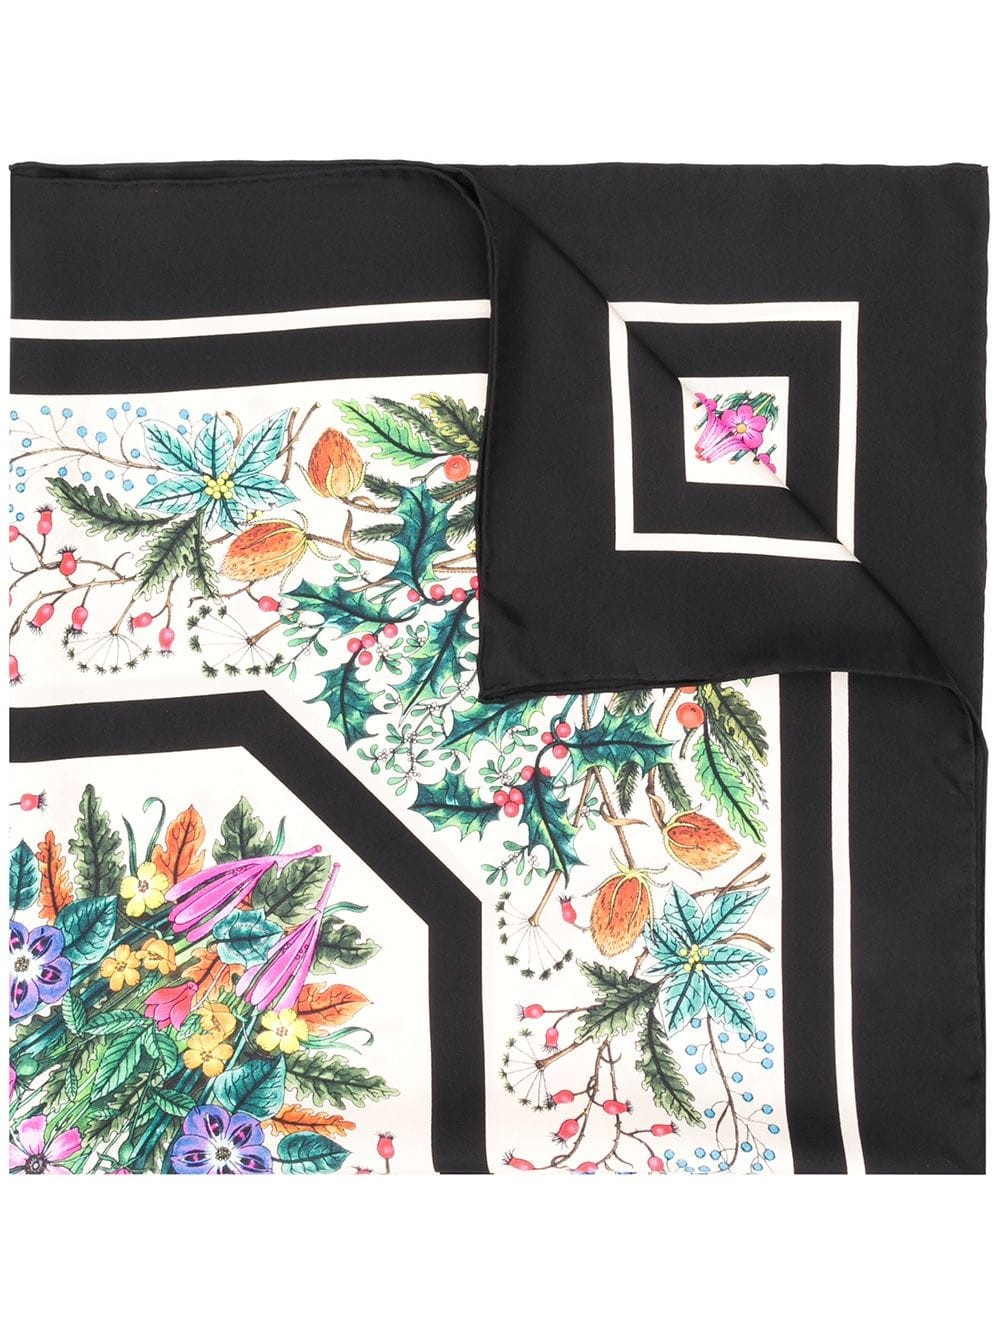 a45c1094225149 gucci FLORAL PRINT SCARF available on montiboutique.com - 25553